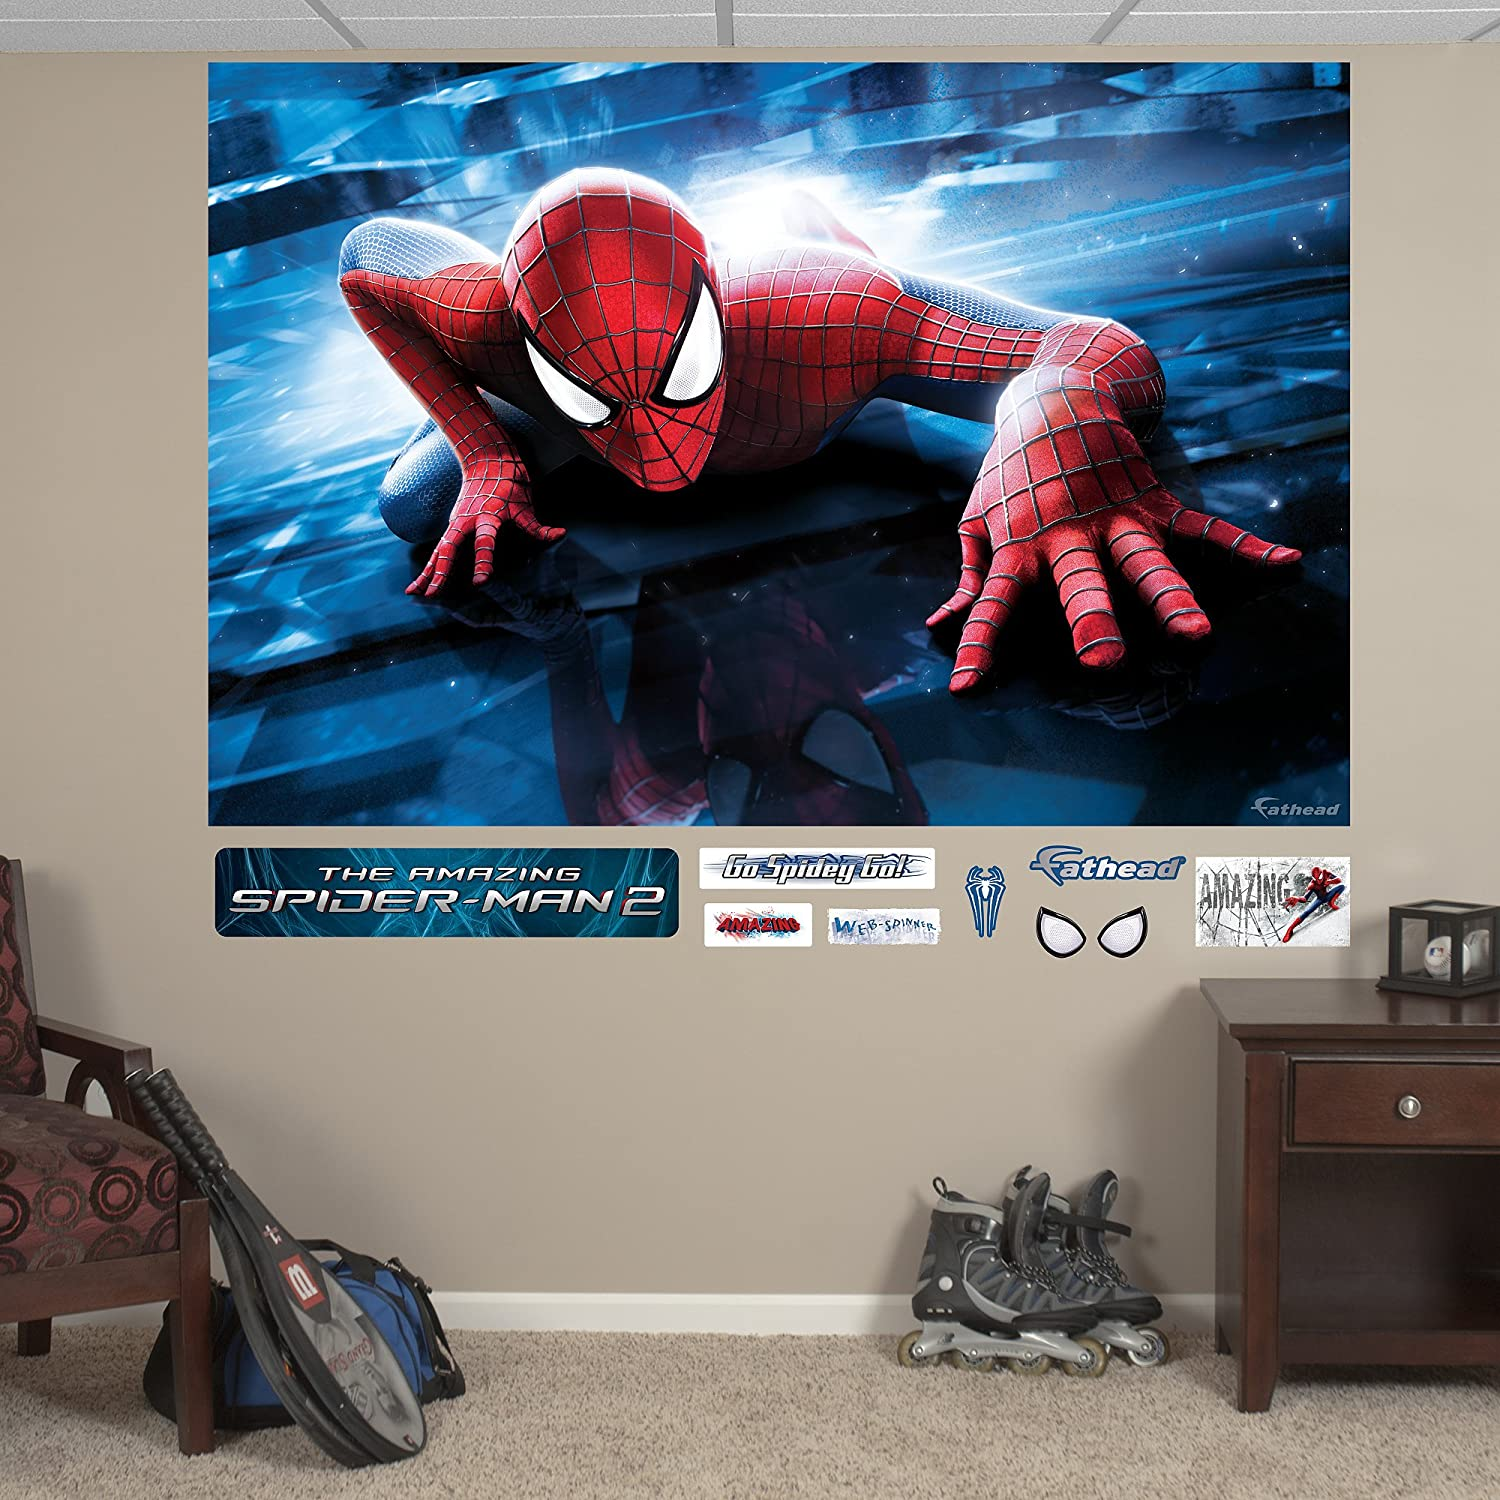 The Amazing Spider-Man 2 Skyline Mural Real Big Wall Decal